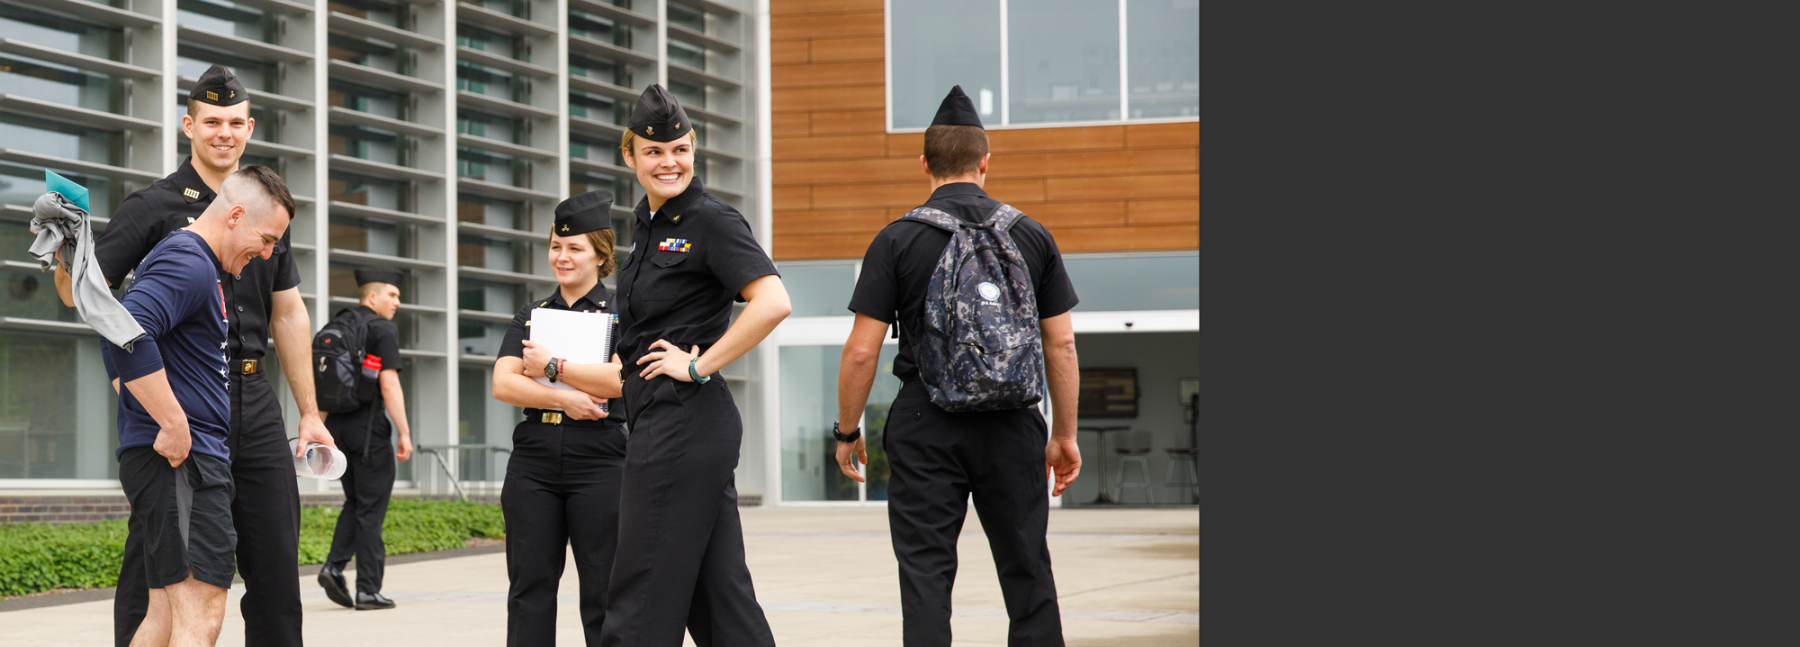 cadets smiling on campus